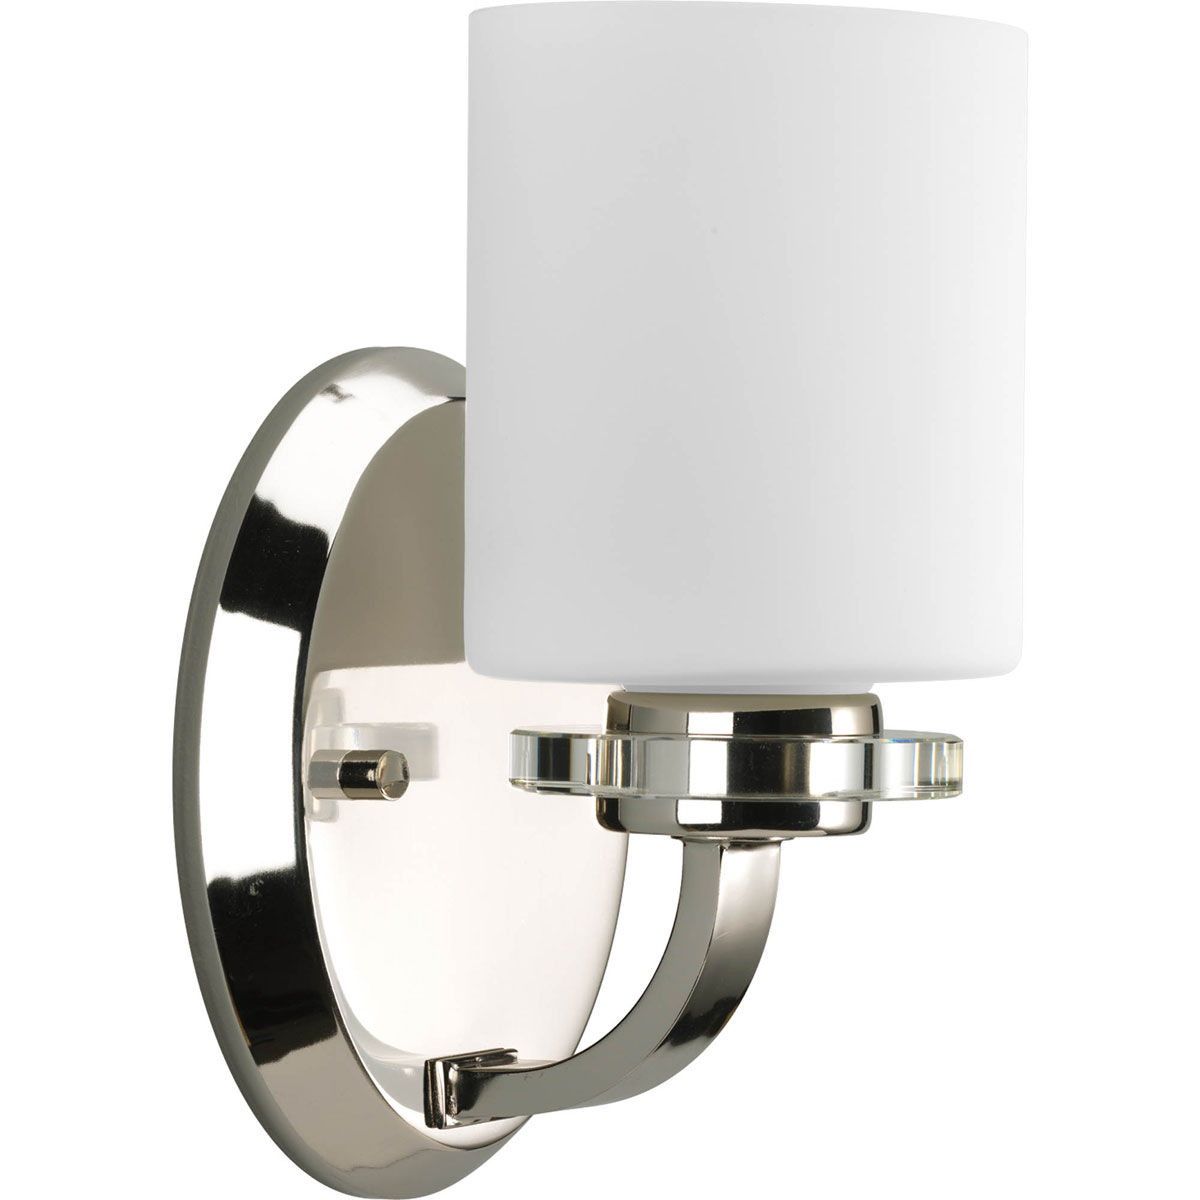 Thomasville Wall Sconces Lighting Fixtures Lights and Home